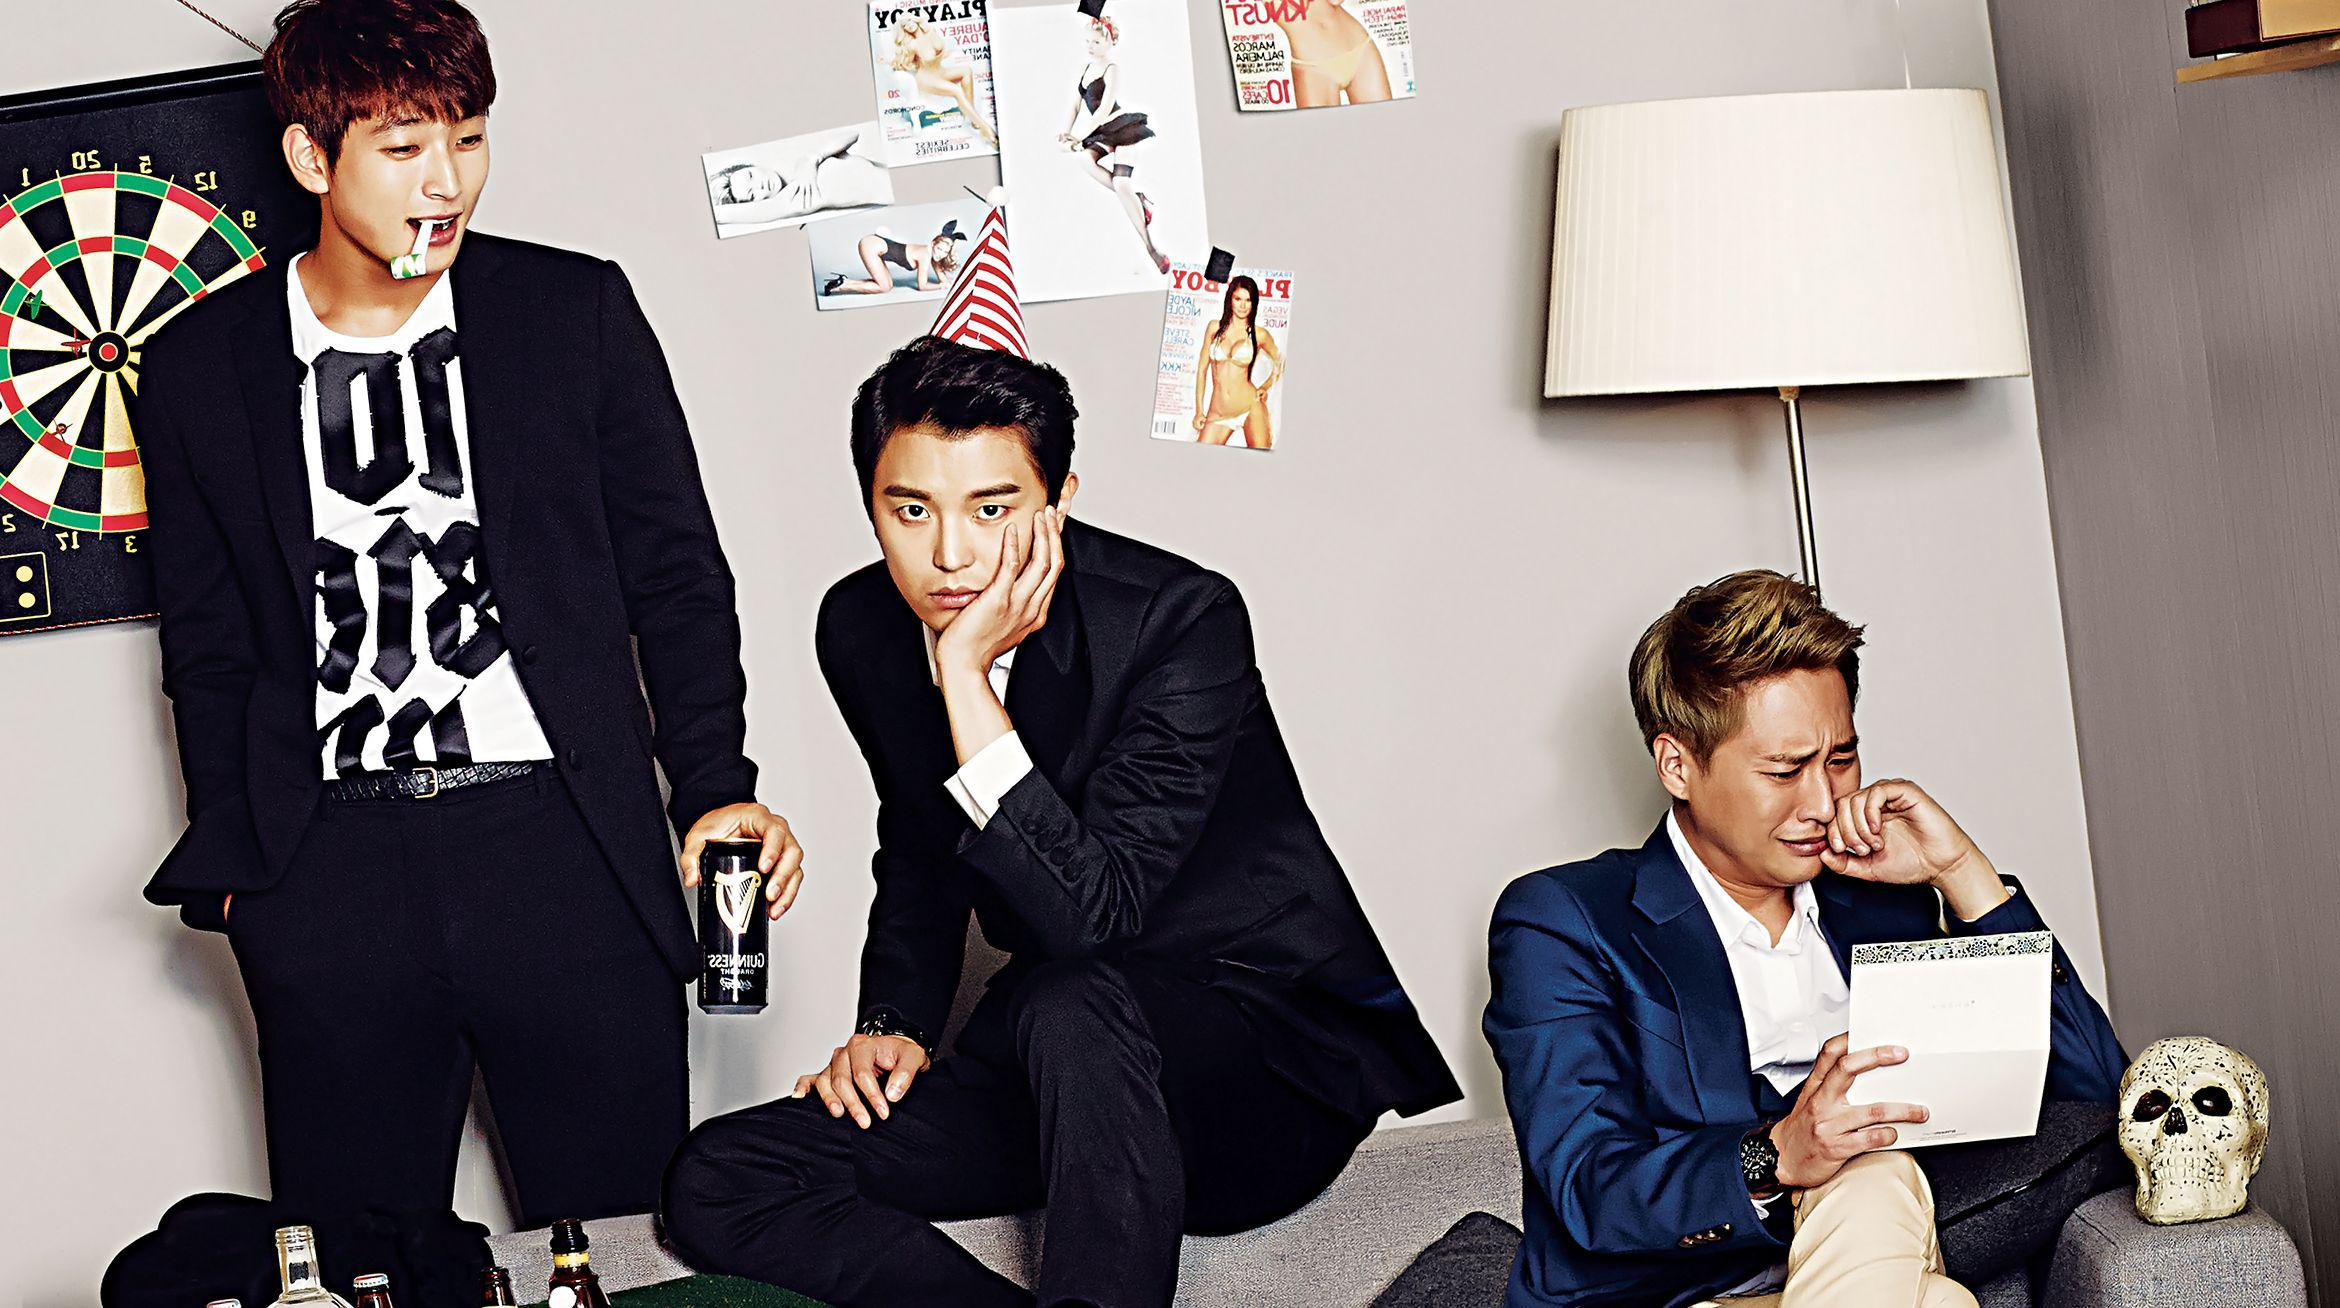 Marriage not dating ep 2 watch online